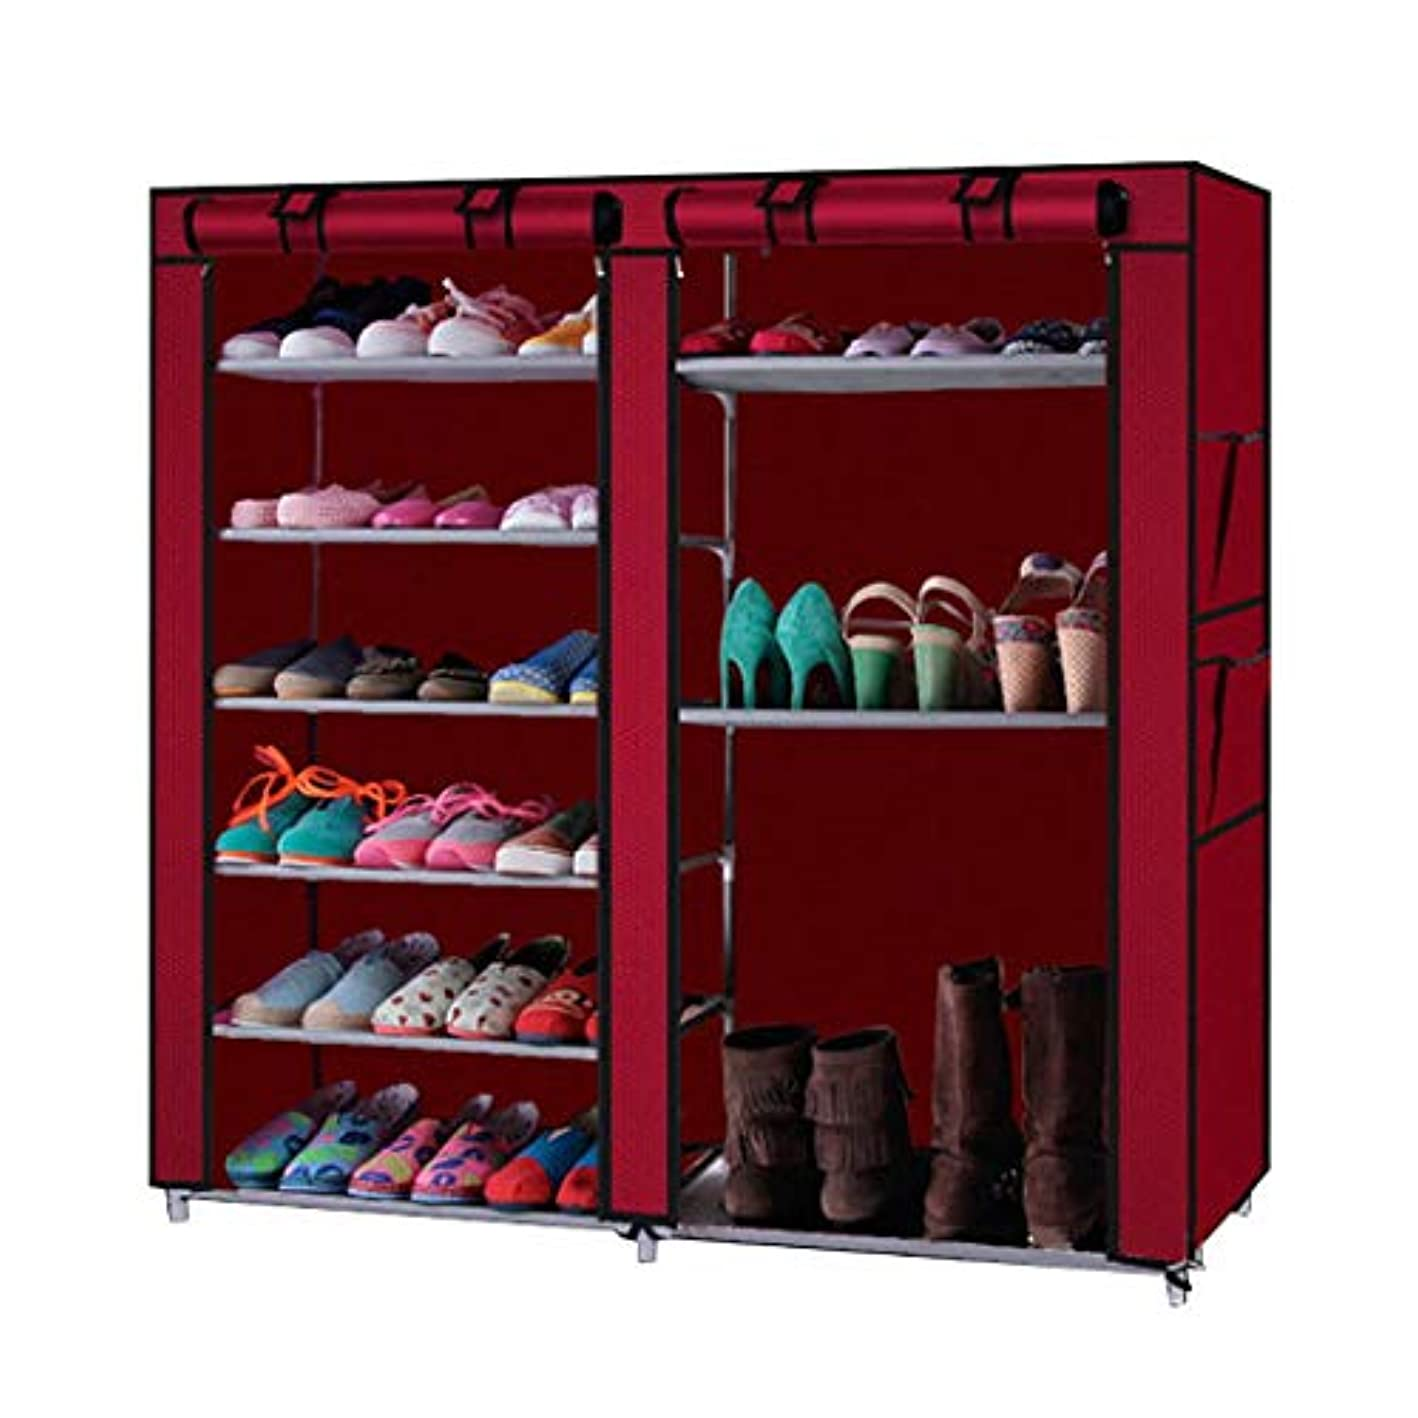 US STOCK Offeir Shoe Rack Double Rows 9 Lattices Combination Style Shoe Cabinet Shoe Tower Organizer Cabinet (Red)